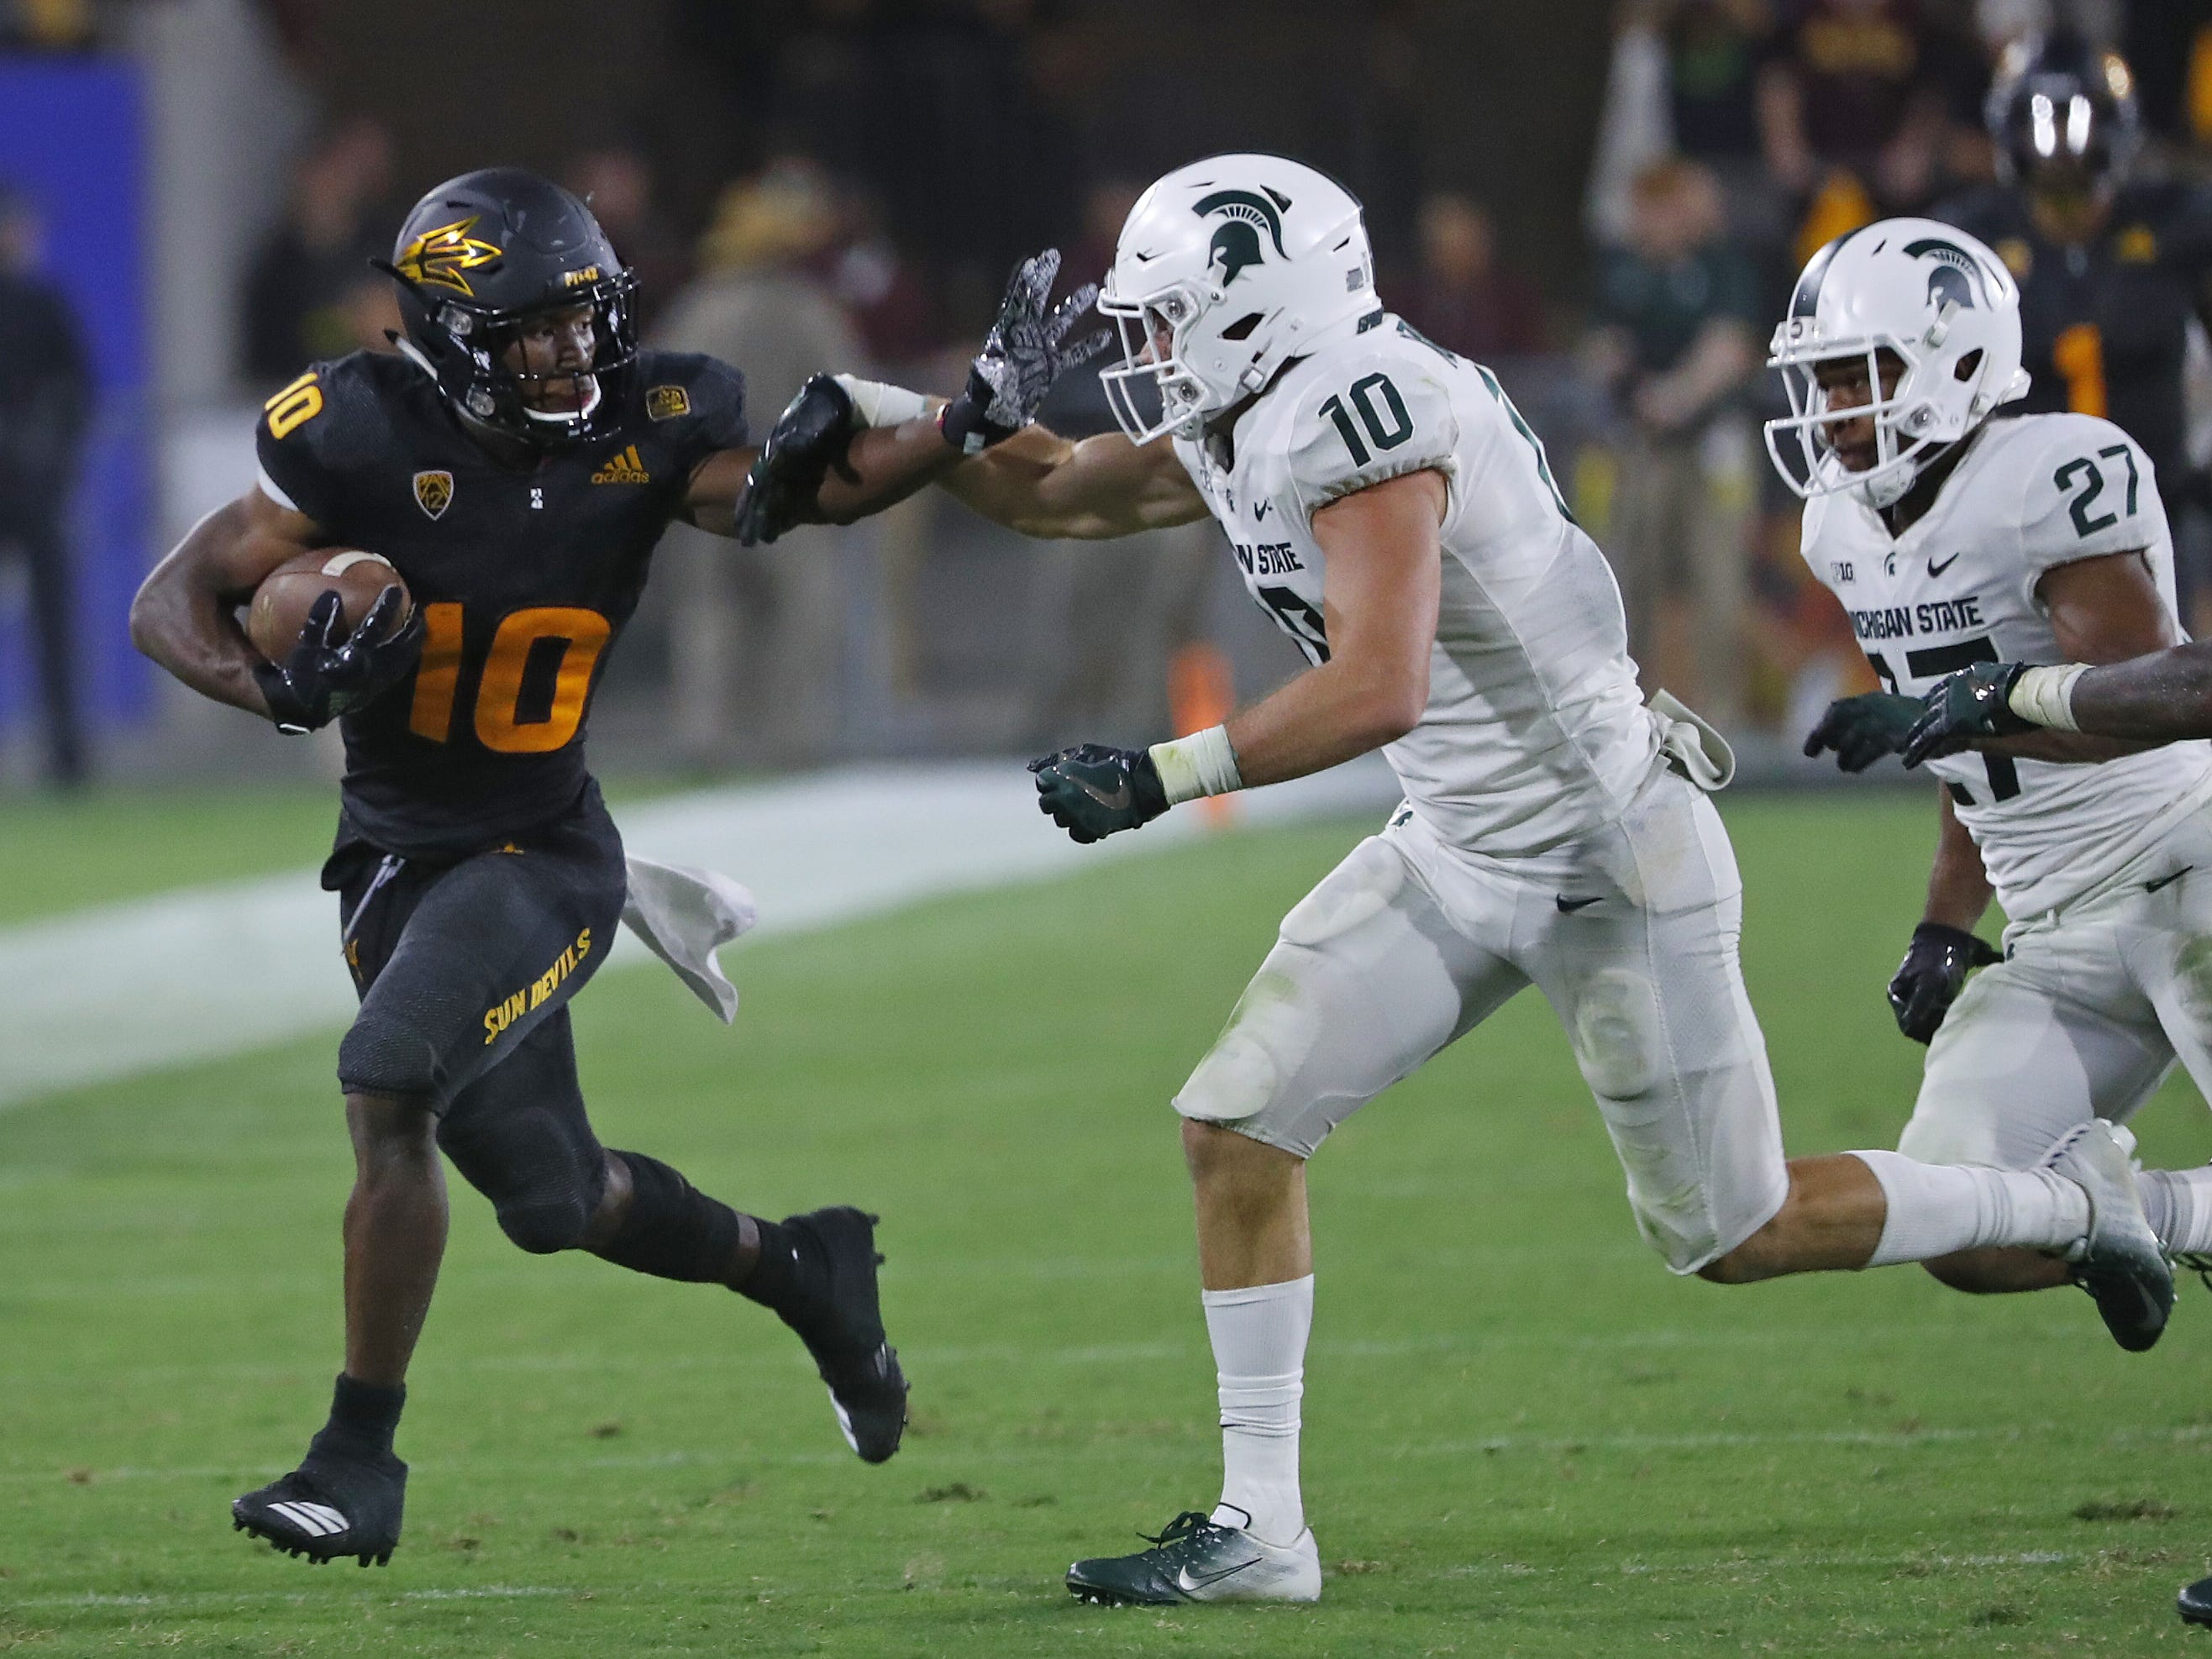 Arizona State Sun Devils wide receiver Kyle Williams (10) stiff arms Michigan State's Matt Morrissey (10) during the fourth quarter at Sun Devil Stadium in Tempe, Ariz. on Sept. 8, 2018.